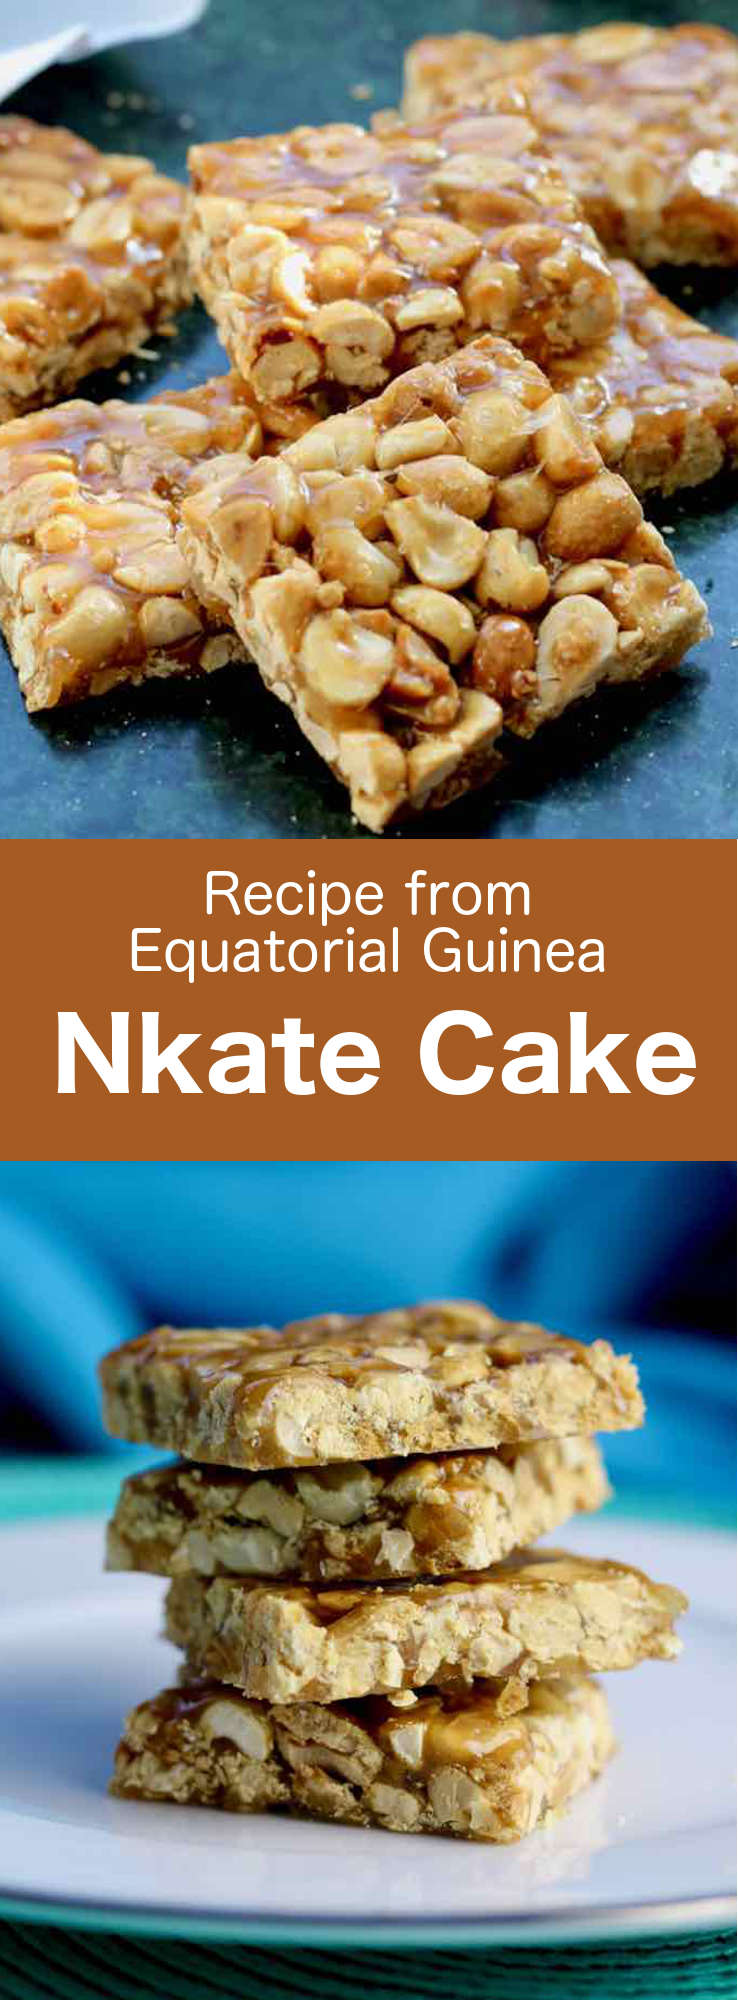 Nkate cake (or kongodo) is a deliciously crunchy brittle made from peanuts, that is popular in Equatorial Guinea and Ghana. #EquatorialGuinea #AfricanCuisine #AfricanRecipe #WorldCuisine #196flavors